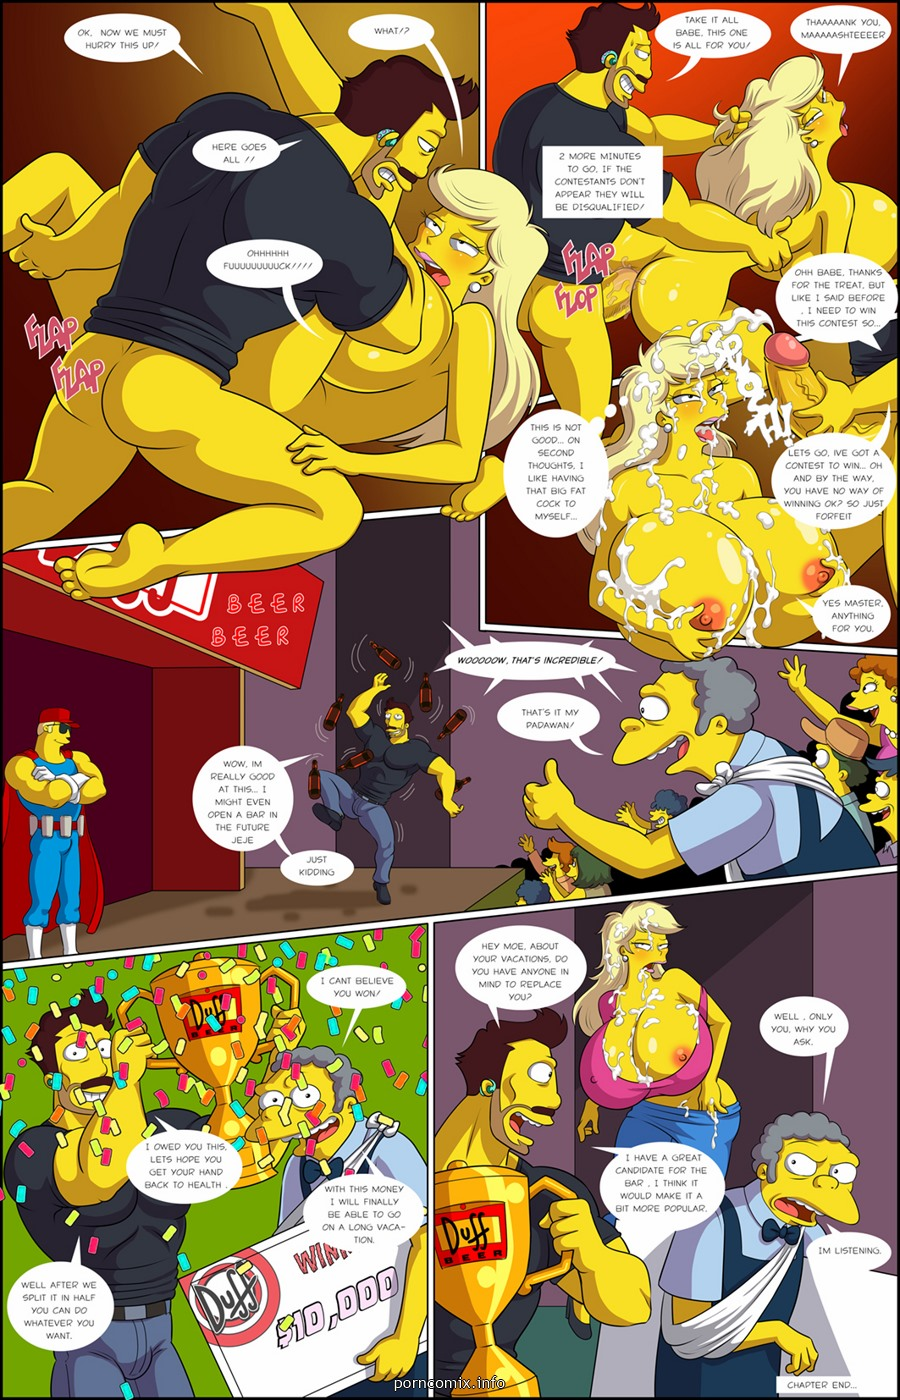 Darren's Adventure 2 (The Simpsons)